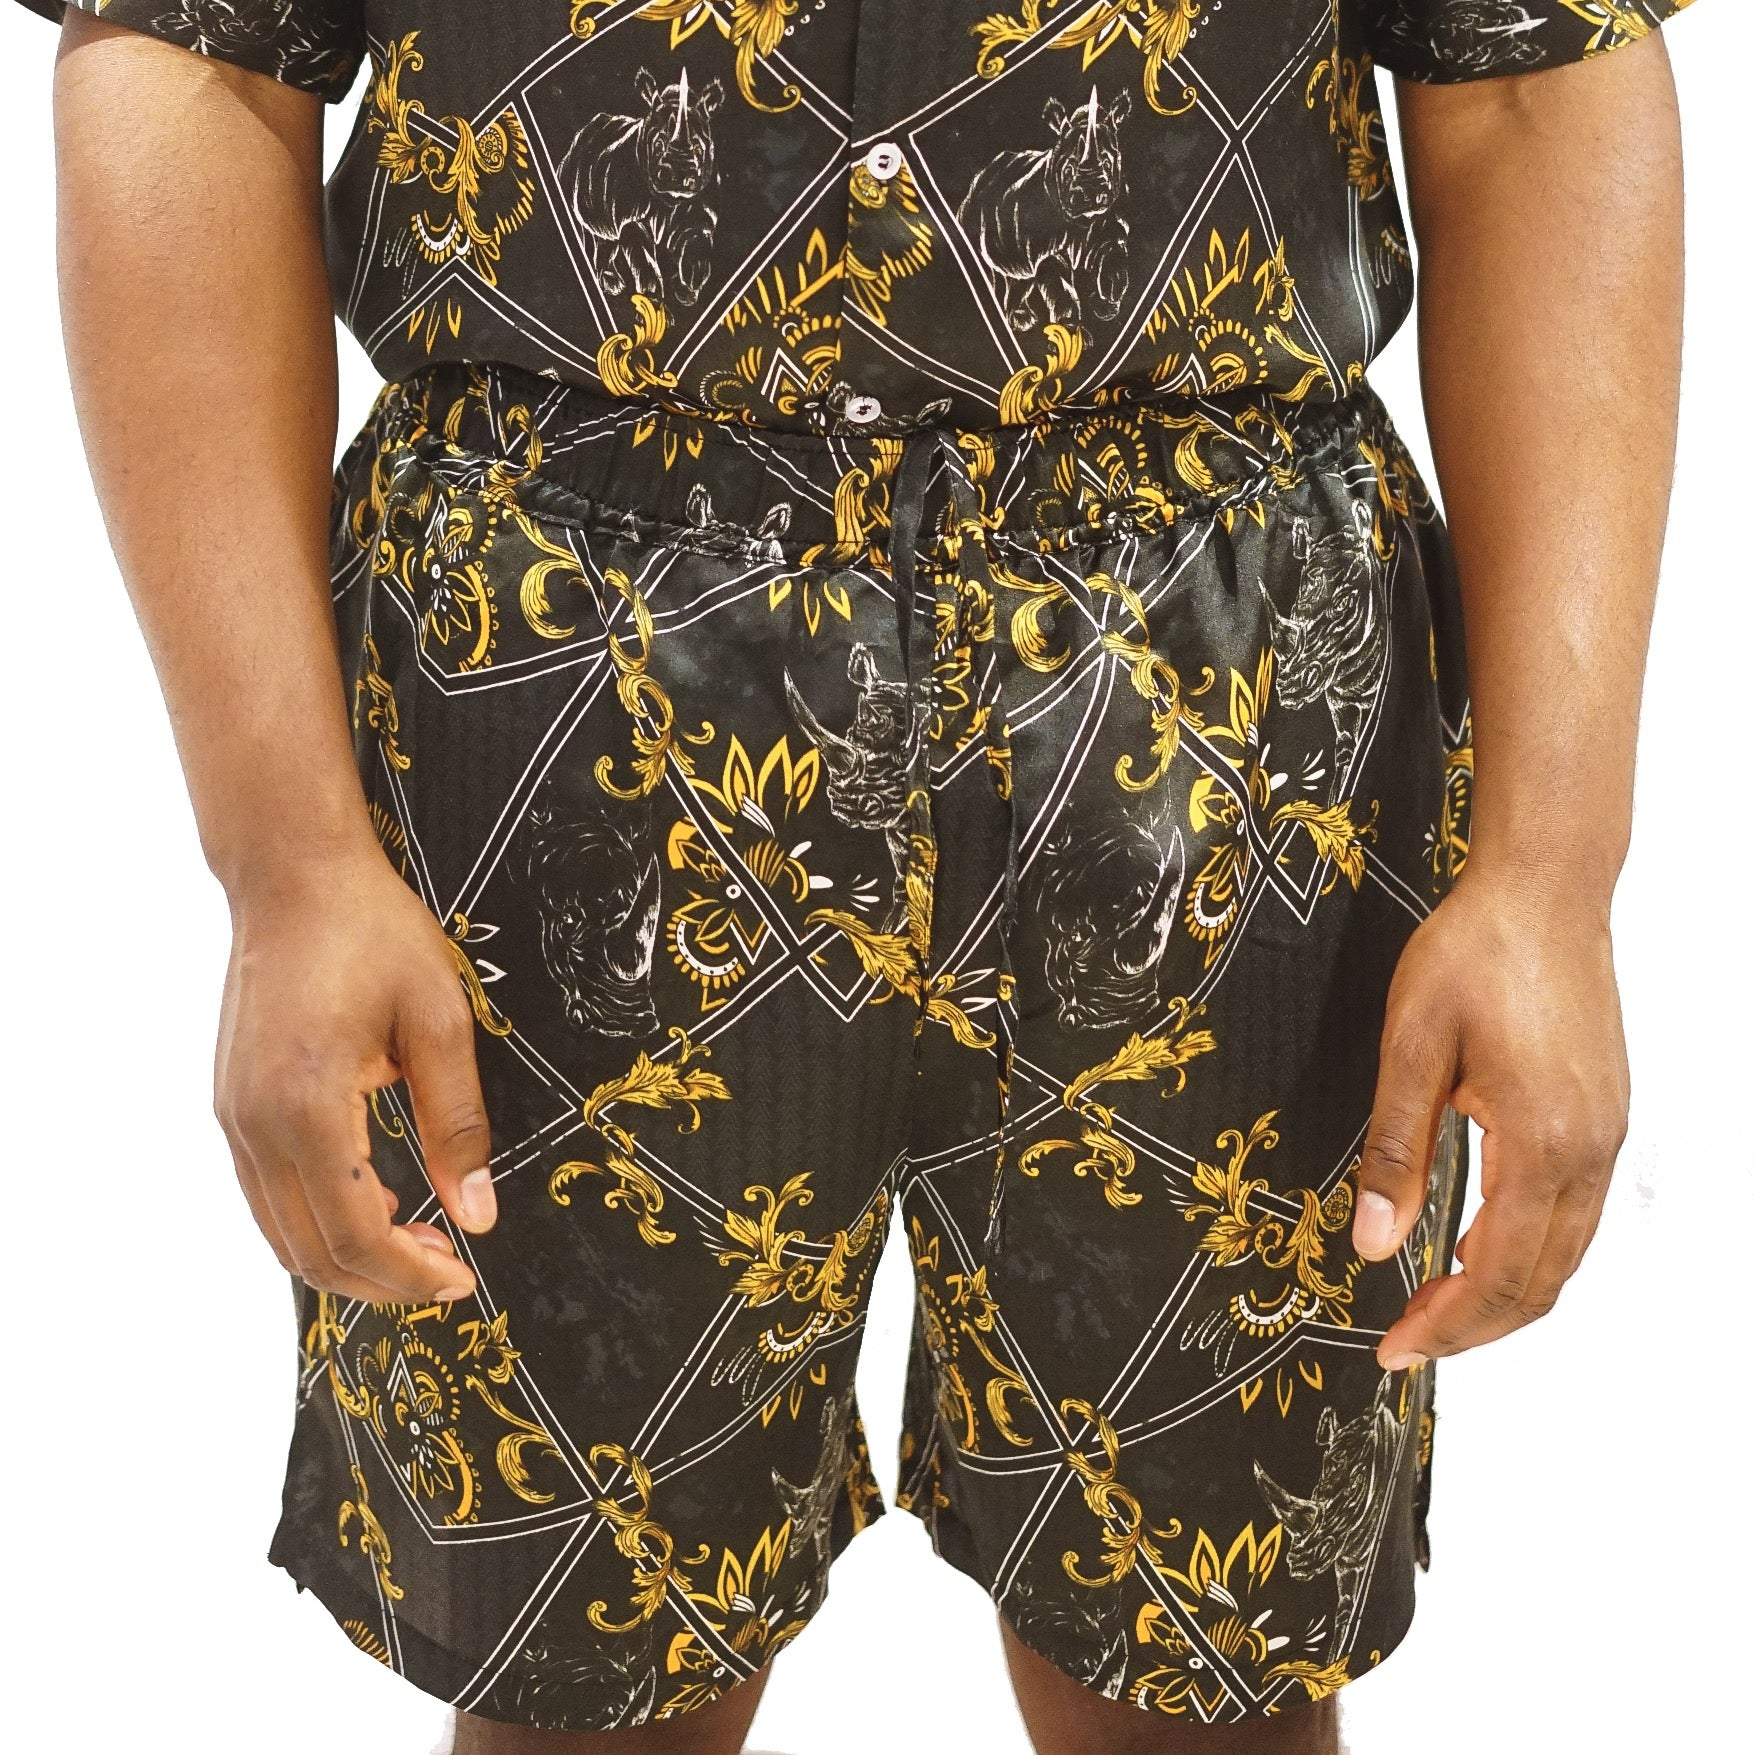 Mens Black Shorts, Printed, Silk Co-ord, Two-piece